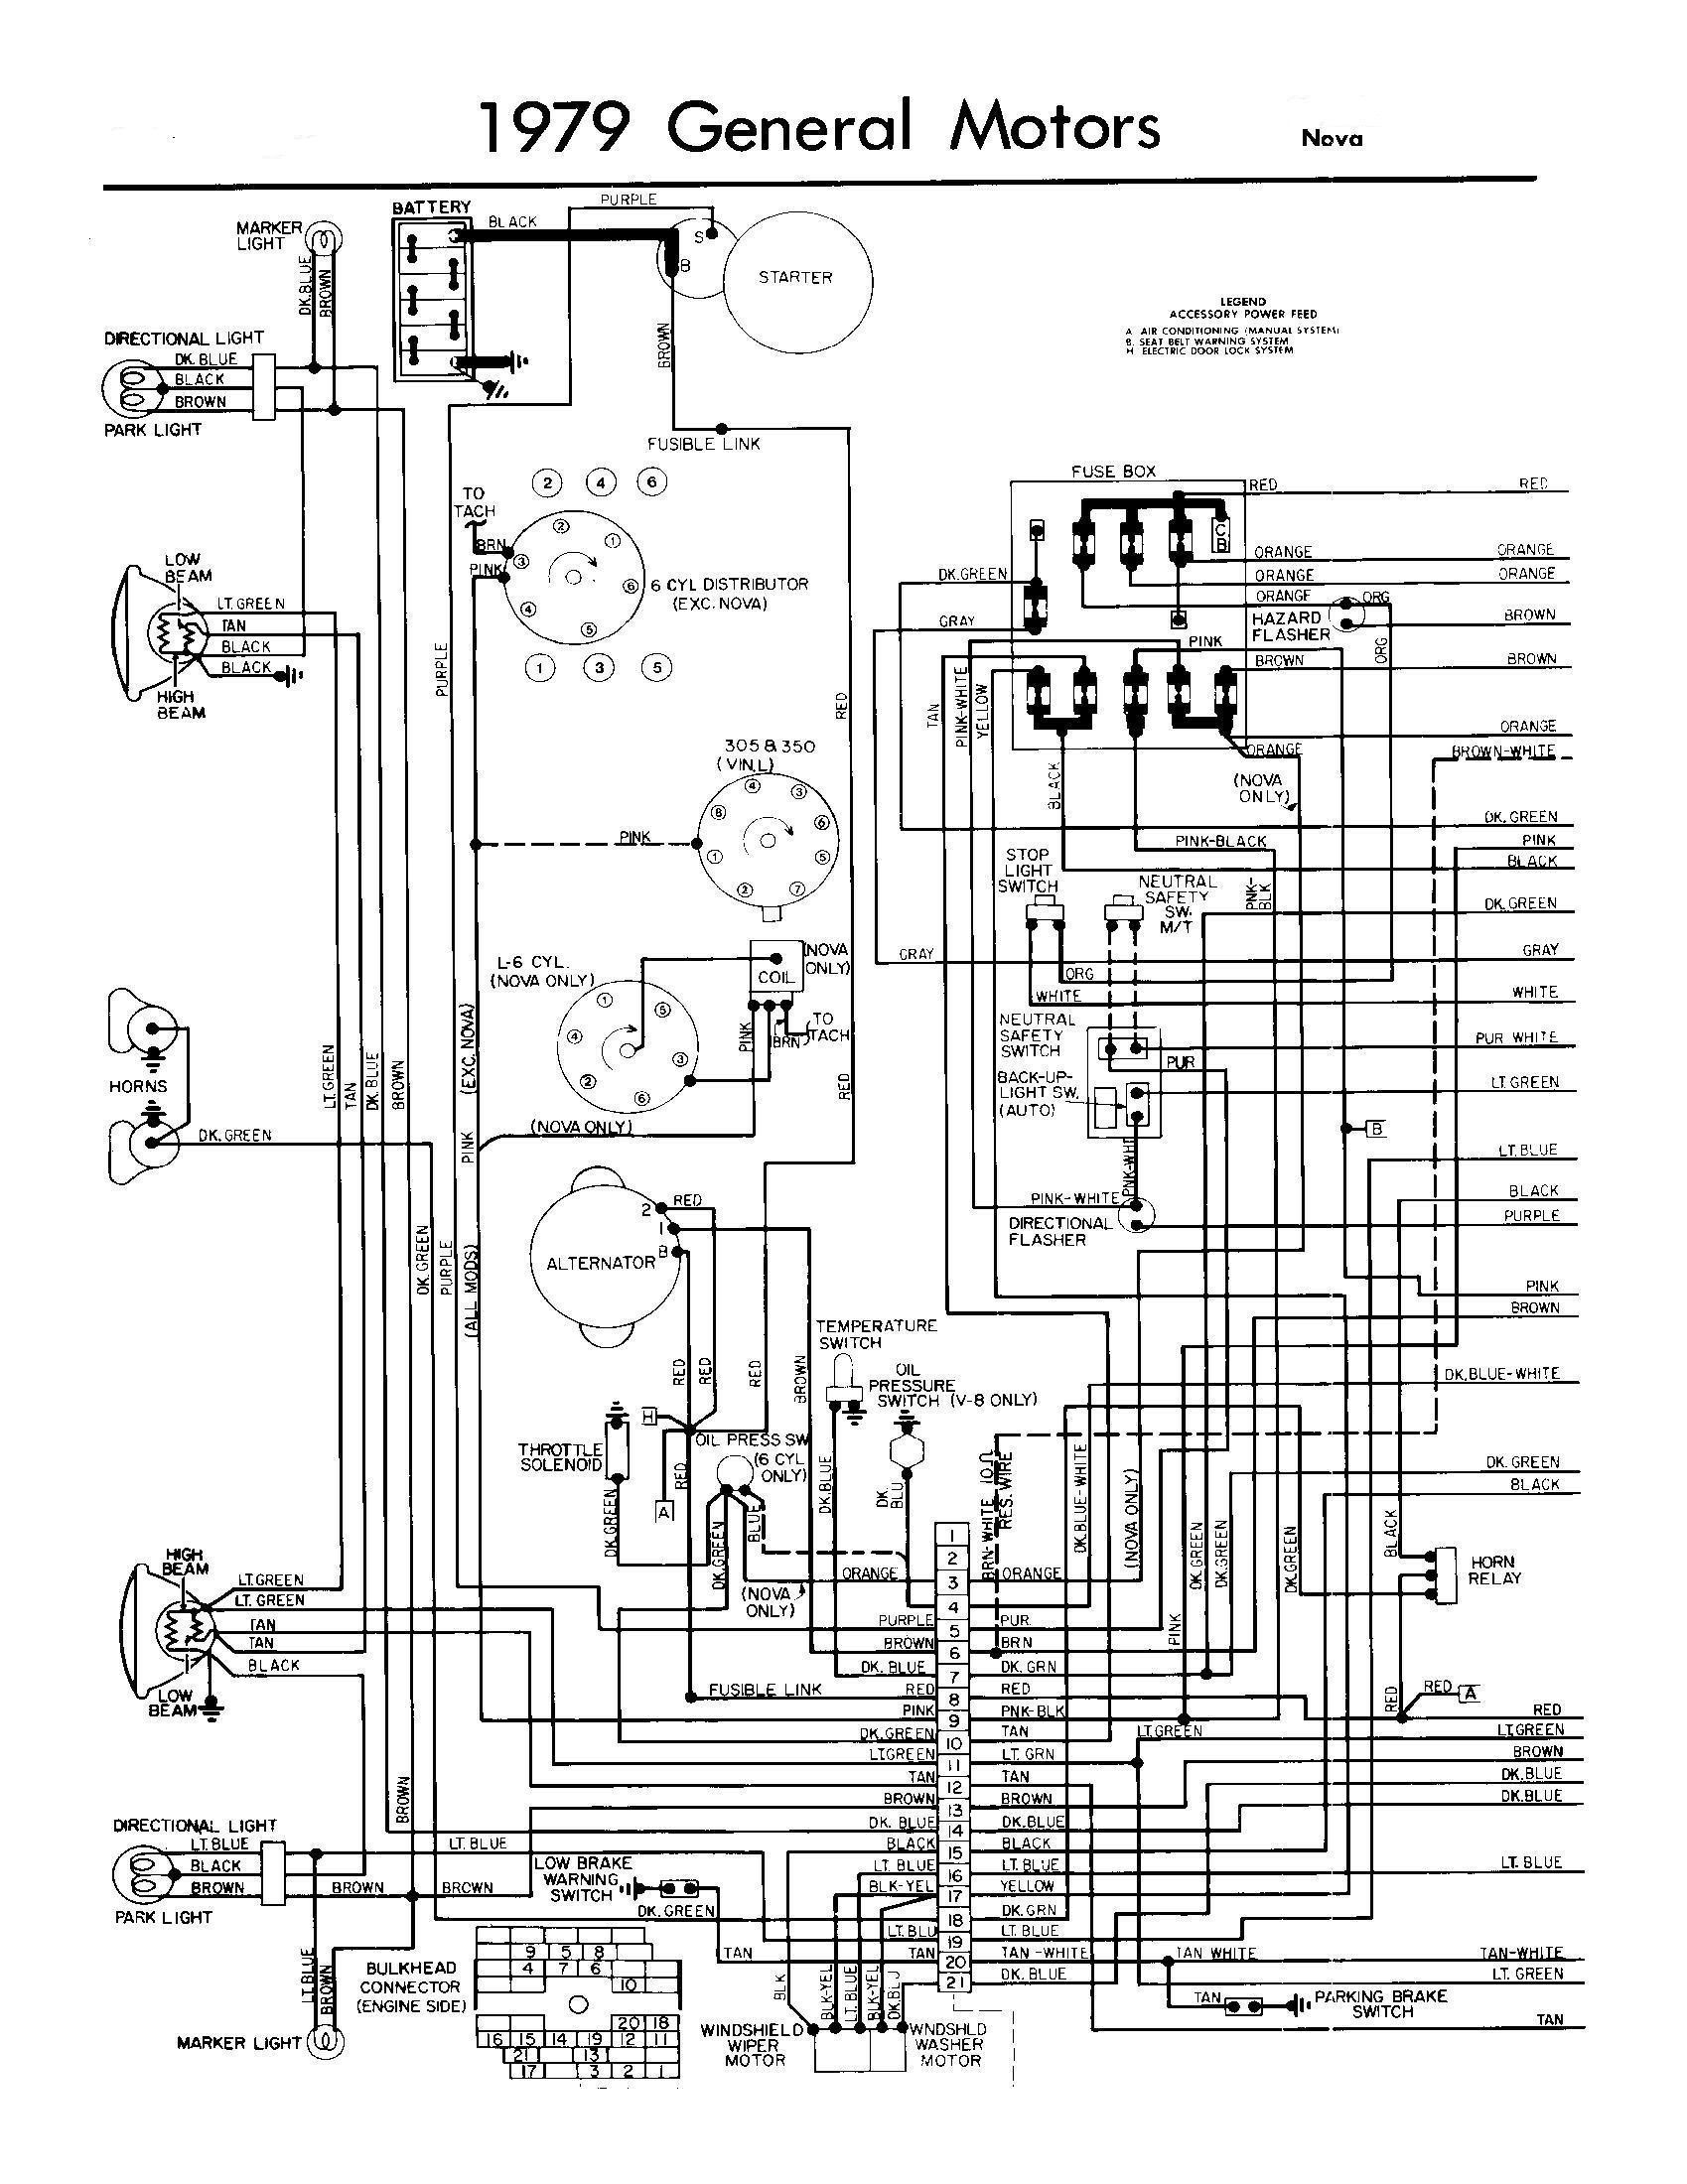 Caterpillar Marine Engine Wiring Diagram Alternator Wiring Diagram Chevy S Best Engine Starter Diagram Chevy Truck Wiring Diagram Circuit Of Alternator Wiring Diagram Chevy on Jcb Alternator Wiring Diagram